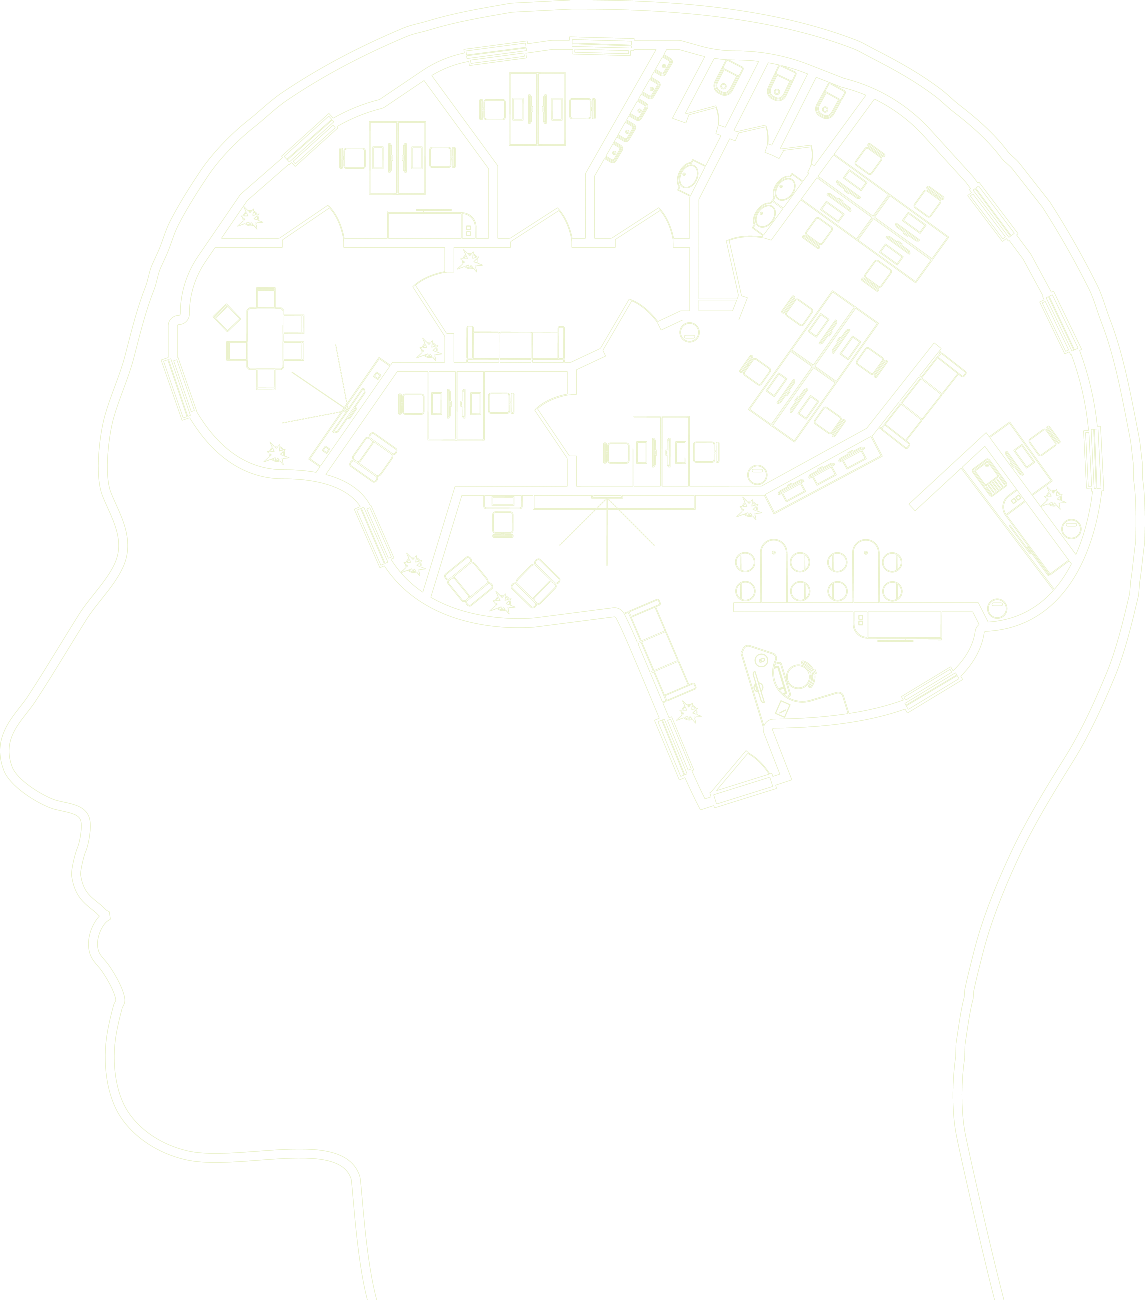 Insights normal image - white brain